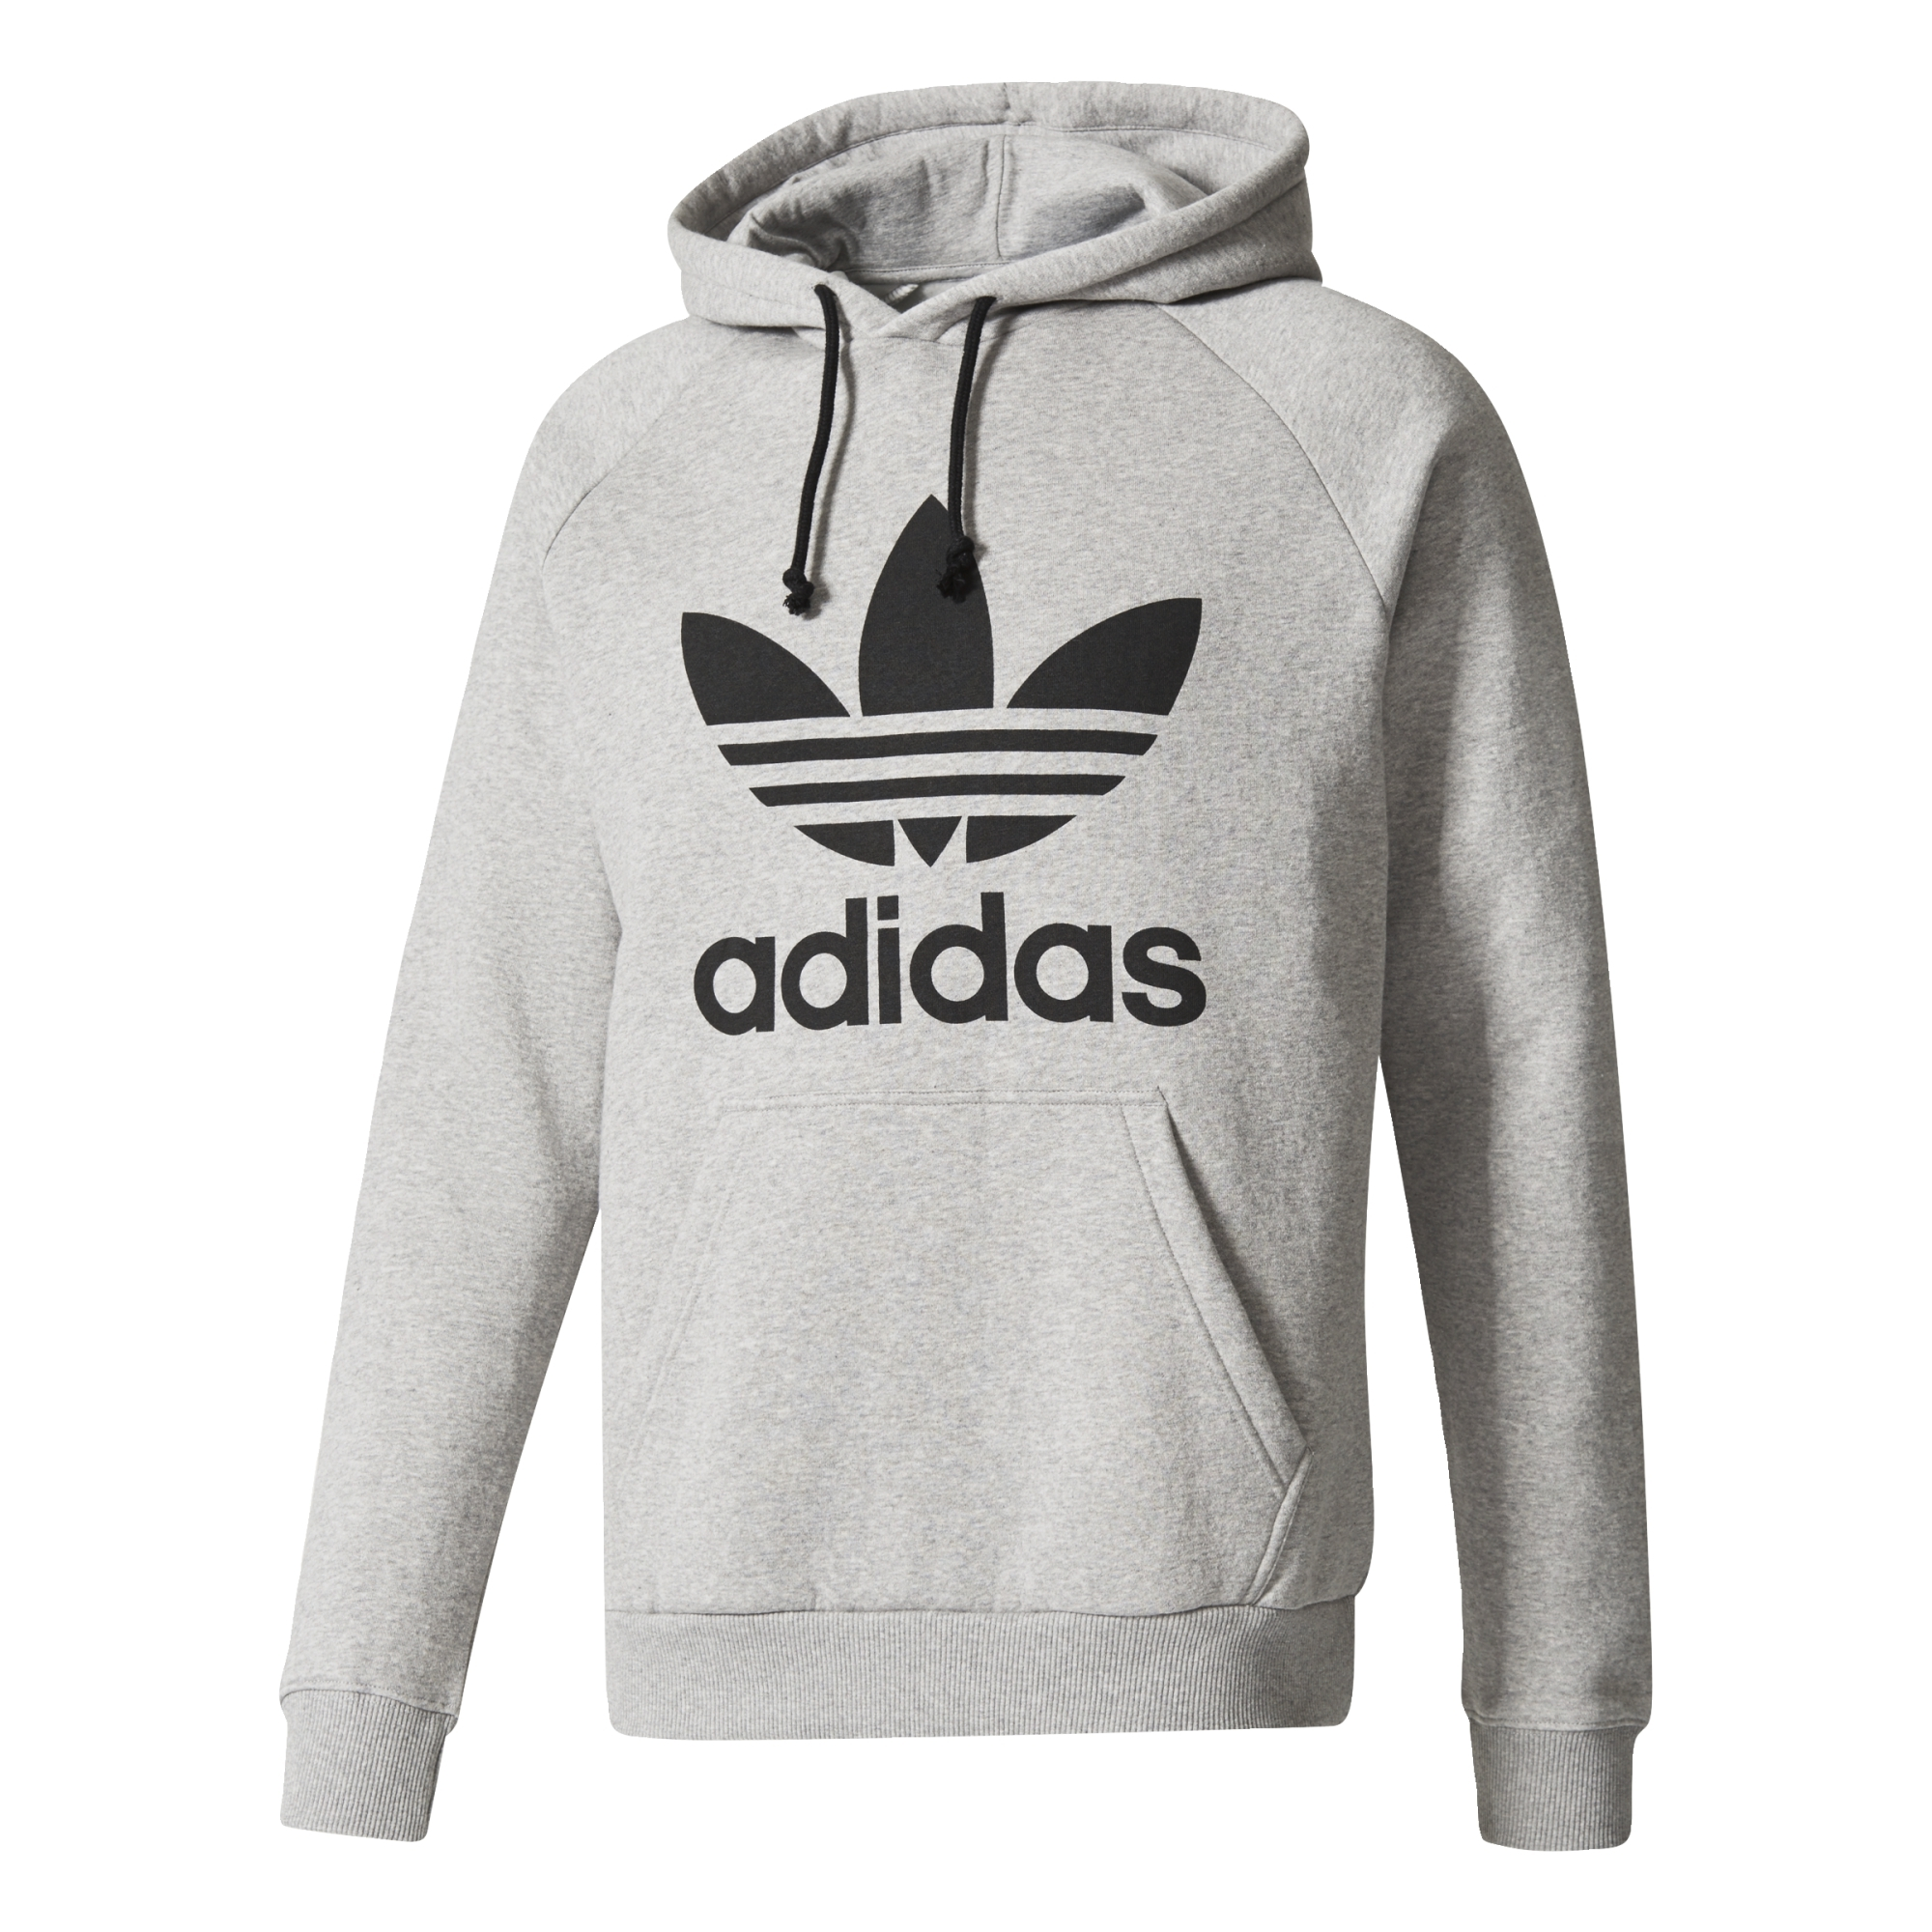 1af7a1a83b0f Adidas Originals Trefoil Hoody (medium grey heather)